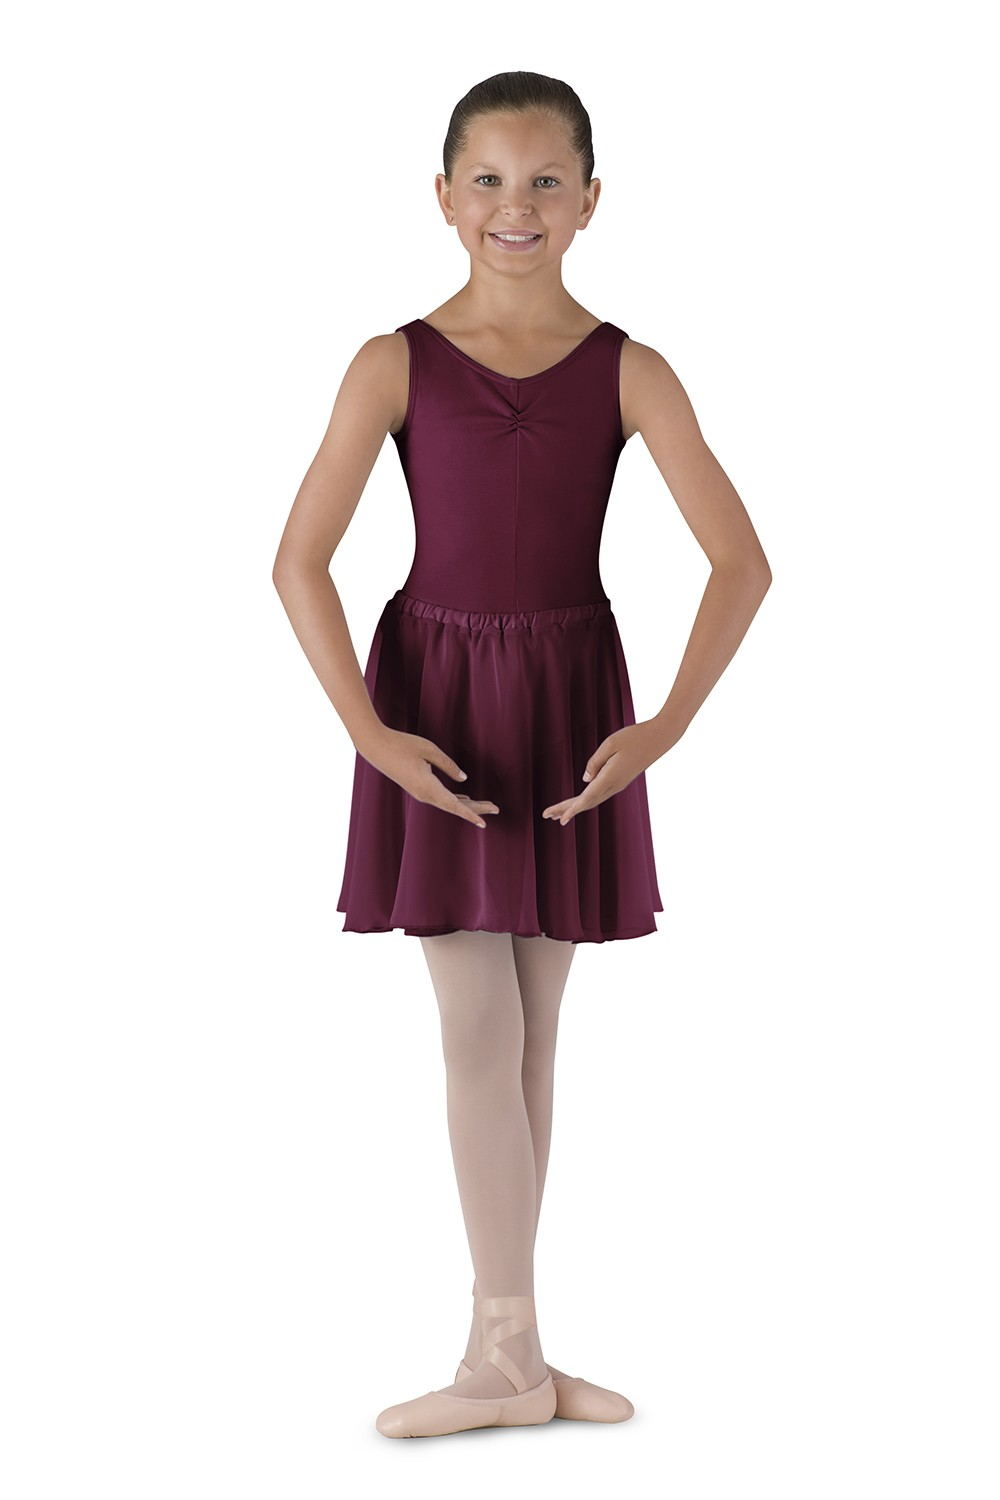 Georgette Skirt Children's Dance Uniforms